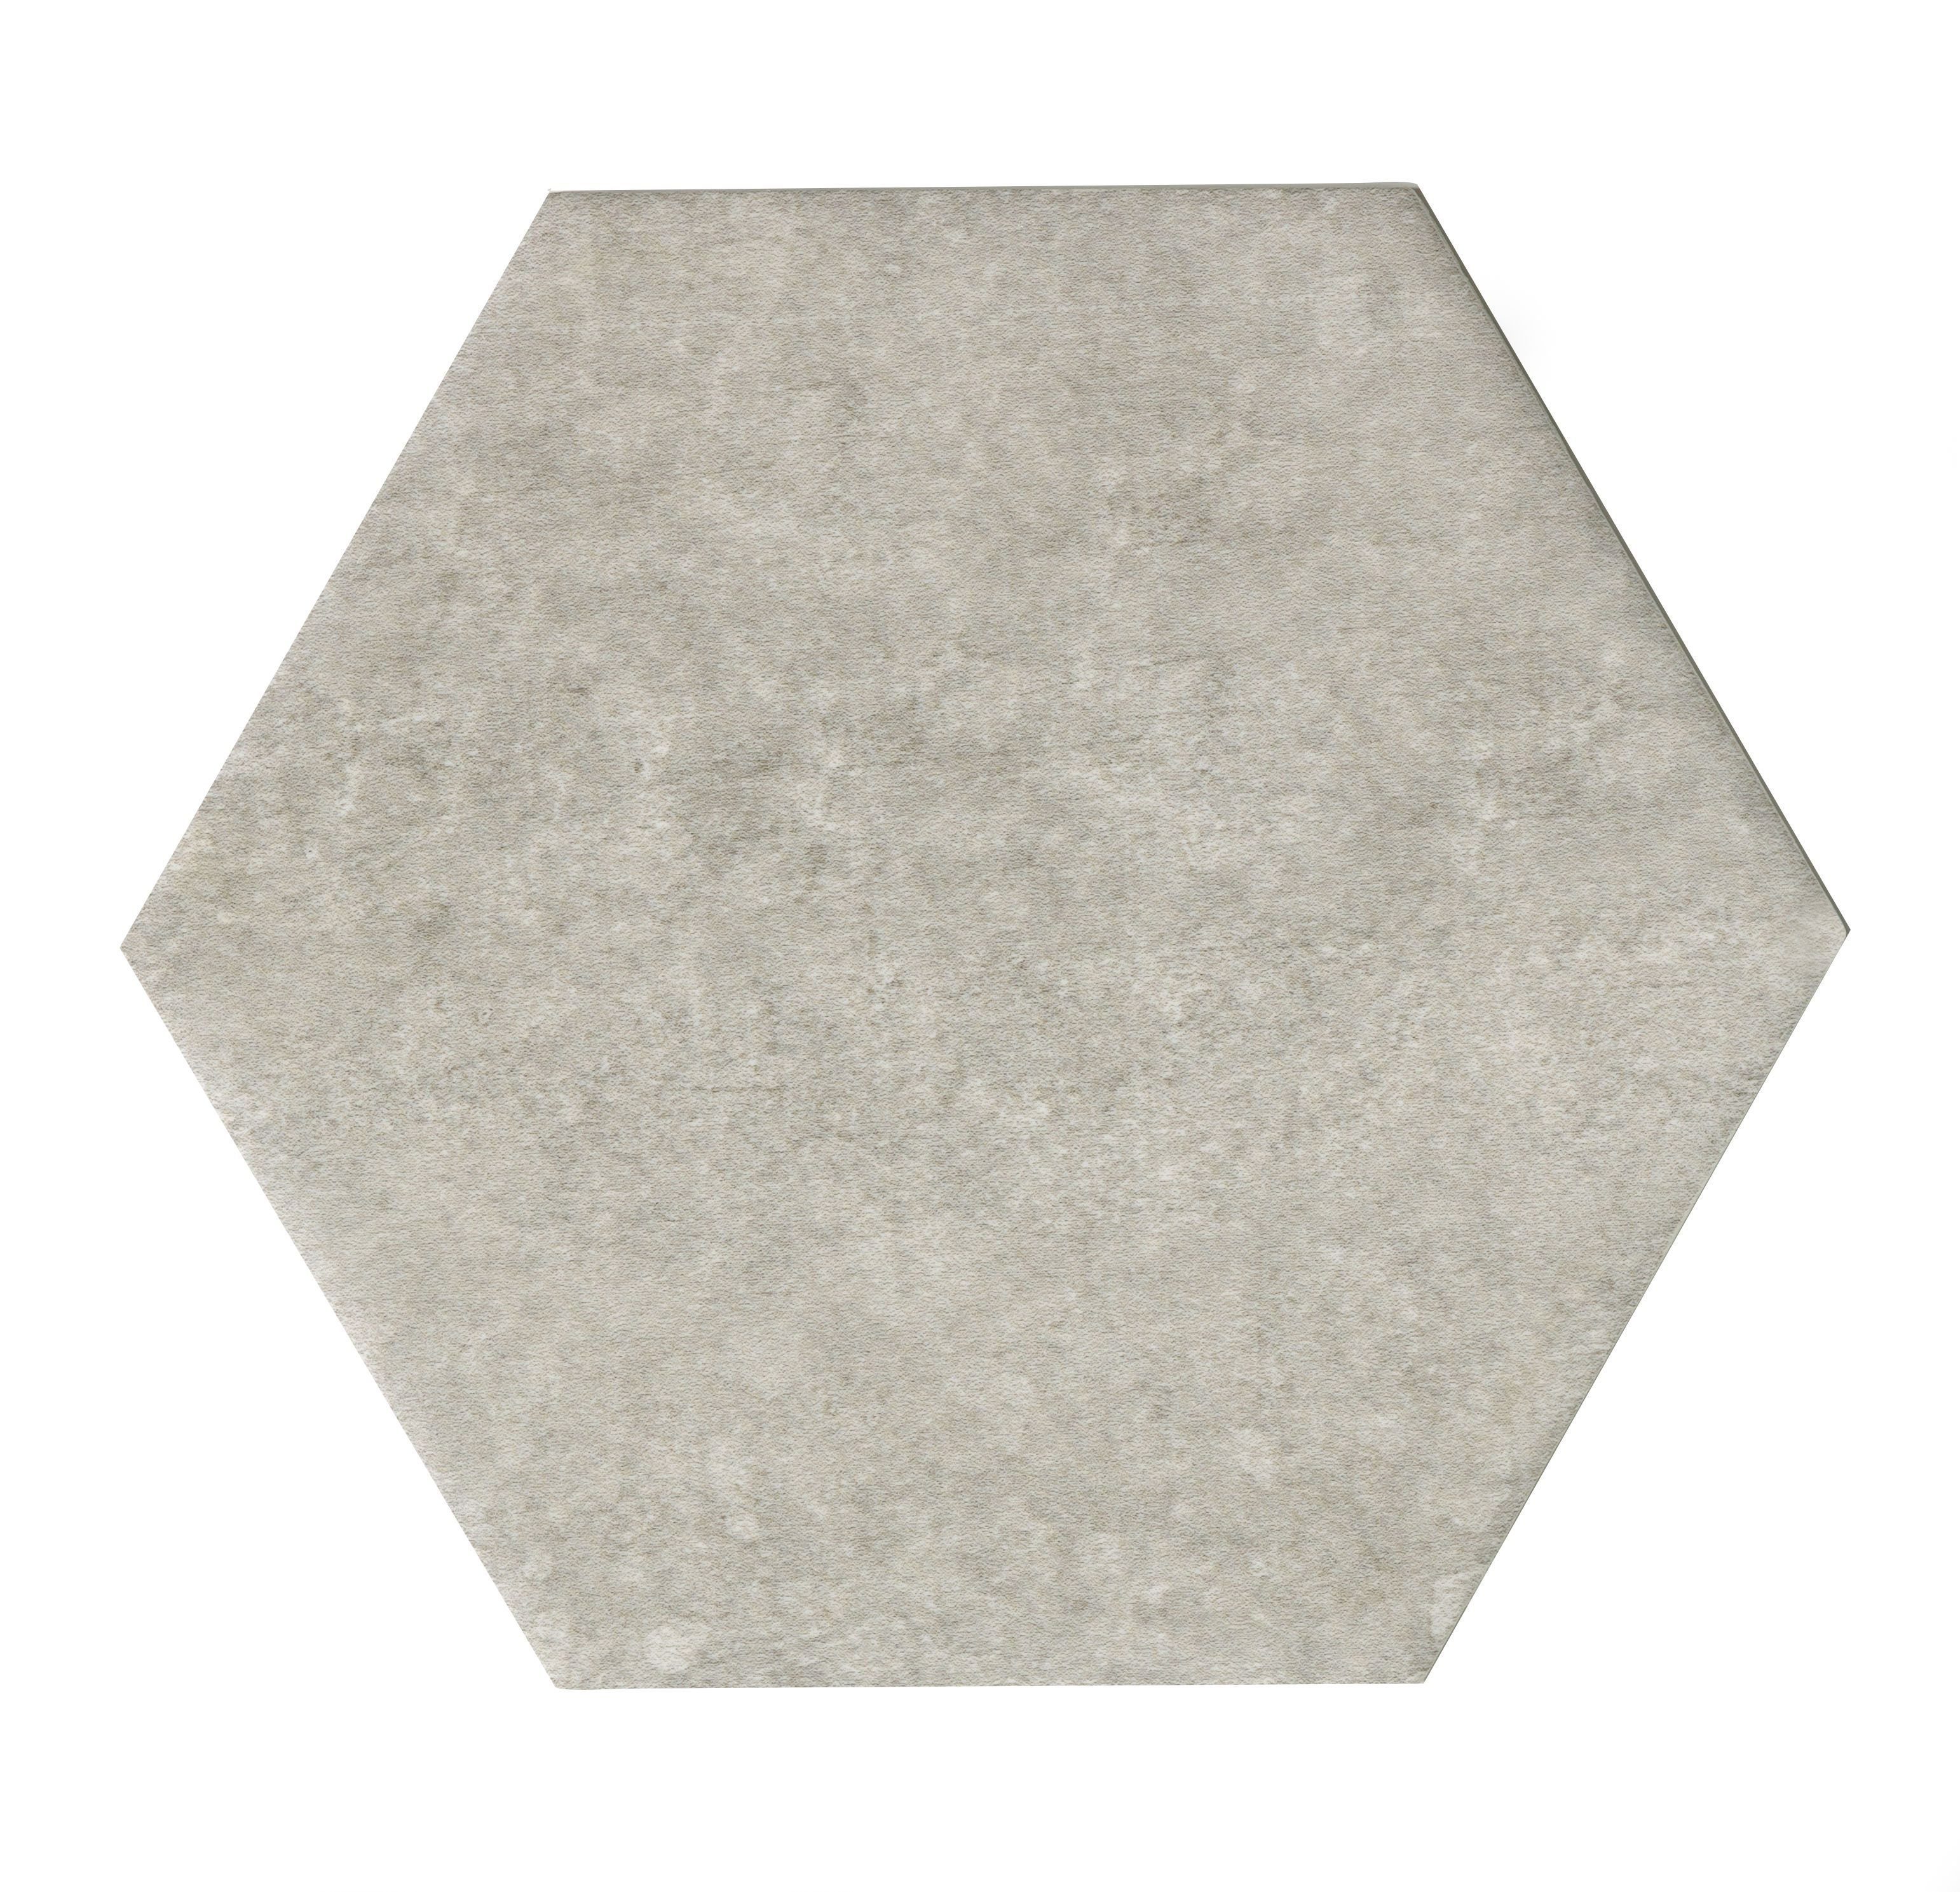 Urban Cement Grey Stone Effect Ceramic Wall Floor Tile: Urban Grey Concrete Effect Ceramic Wall Tile, Pack Of 50